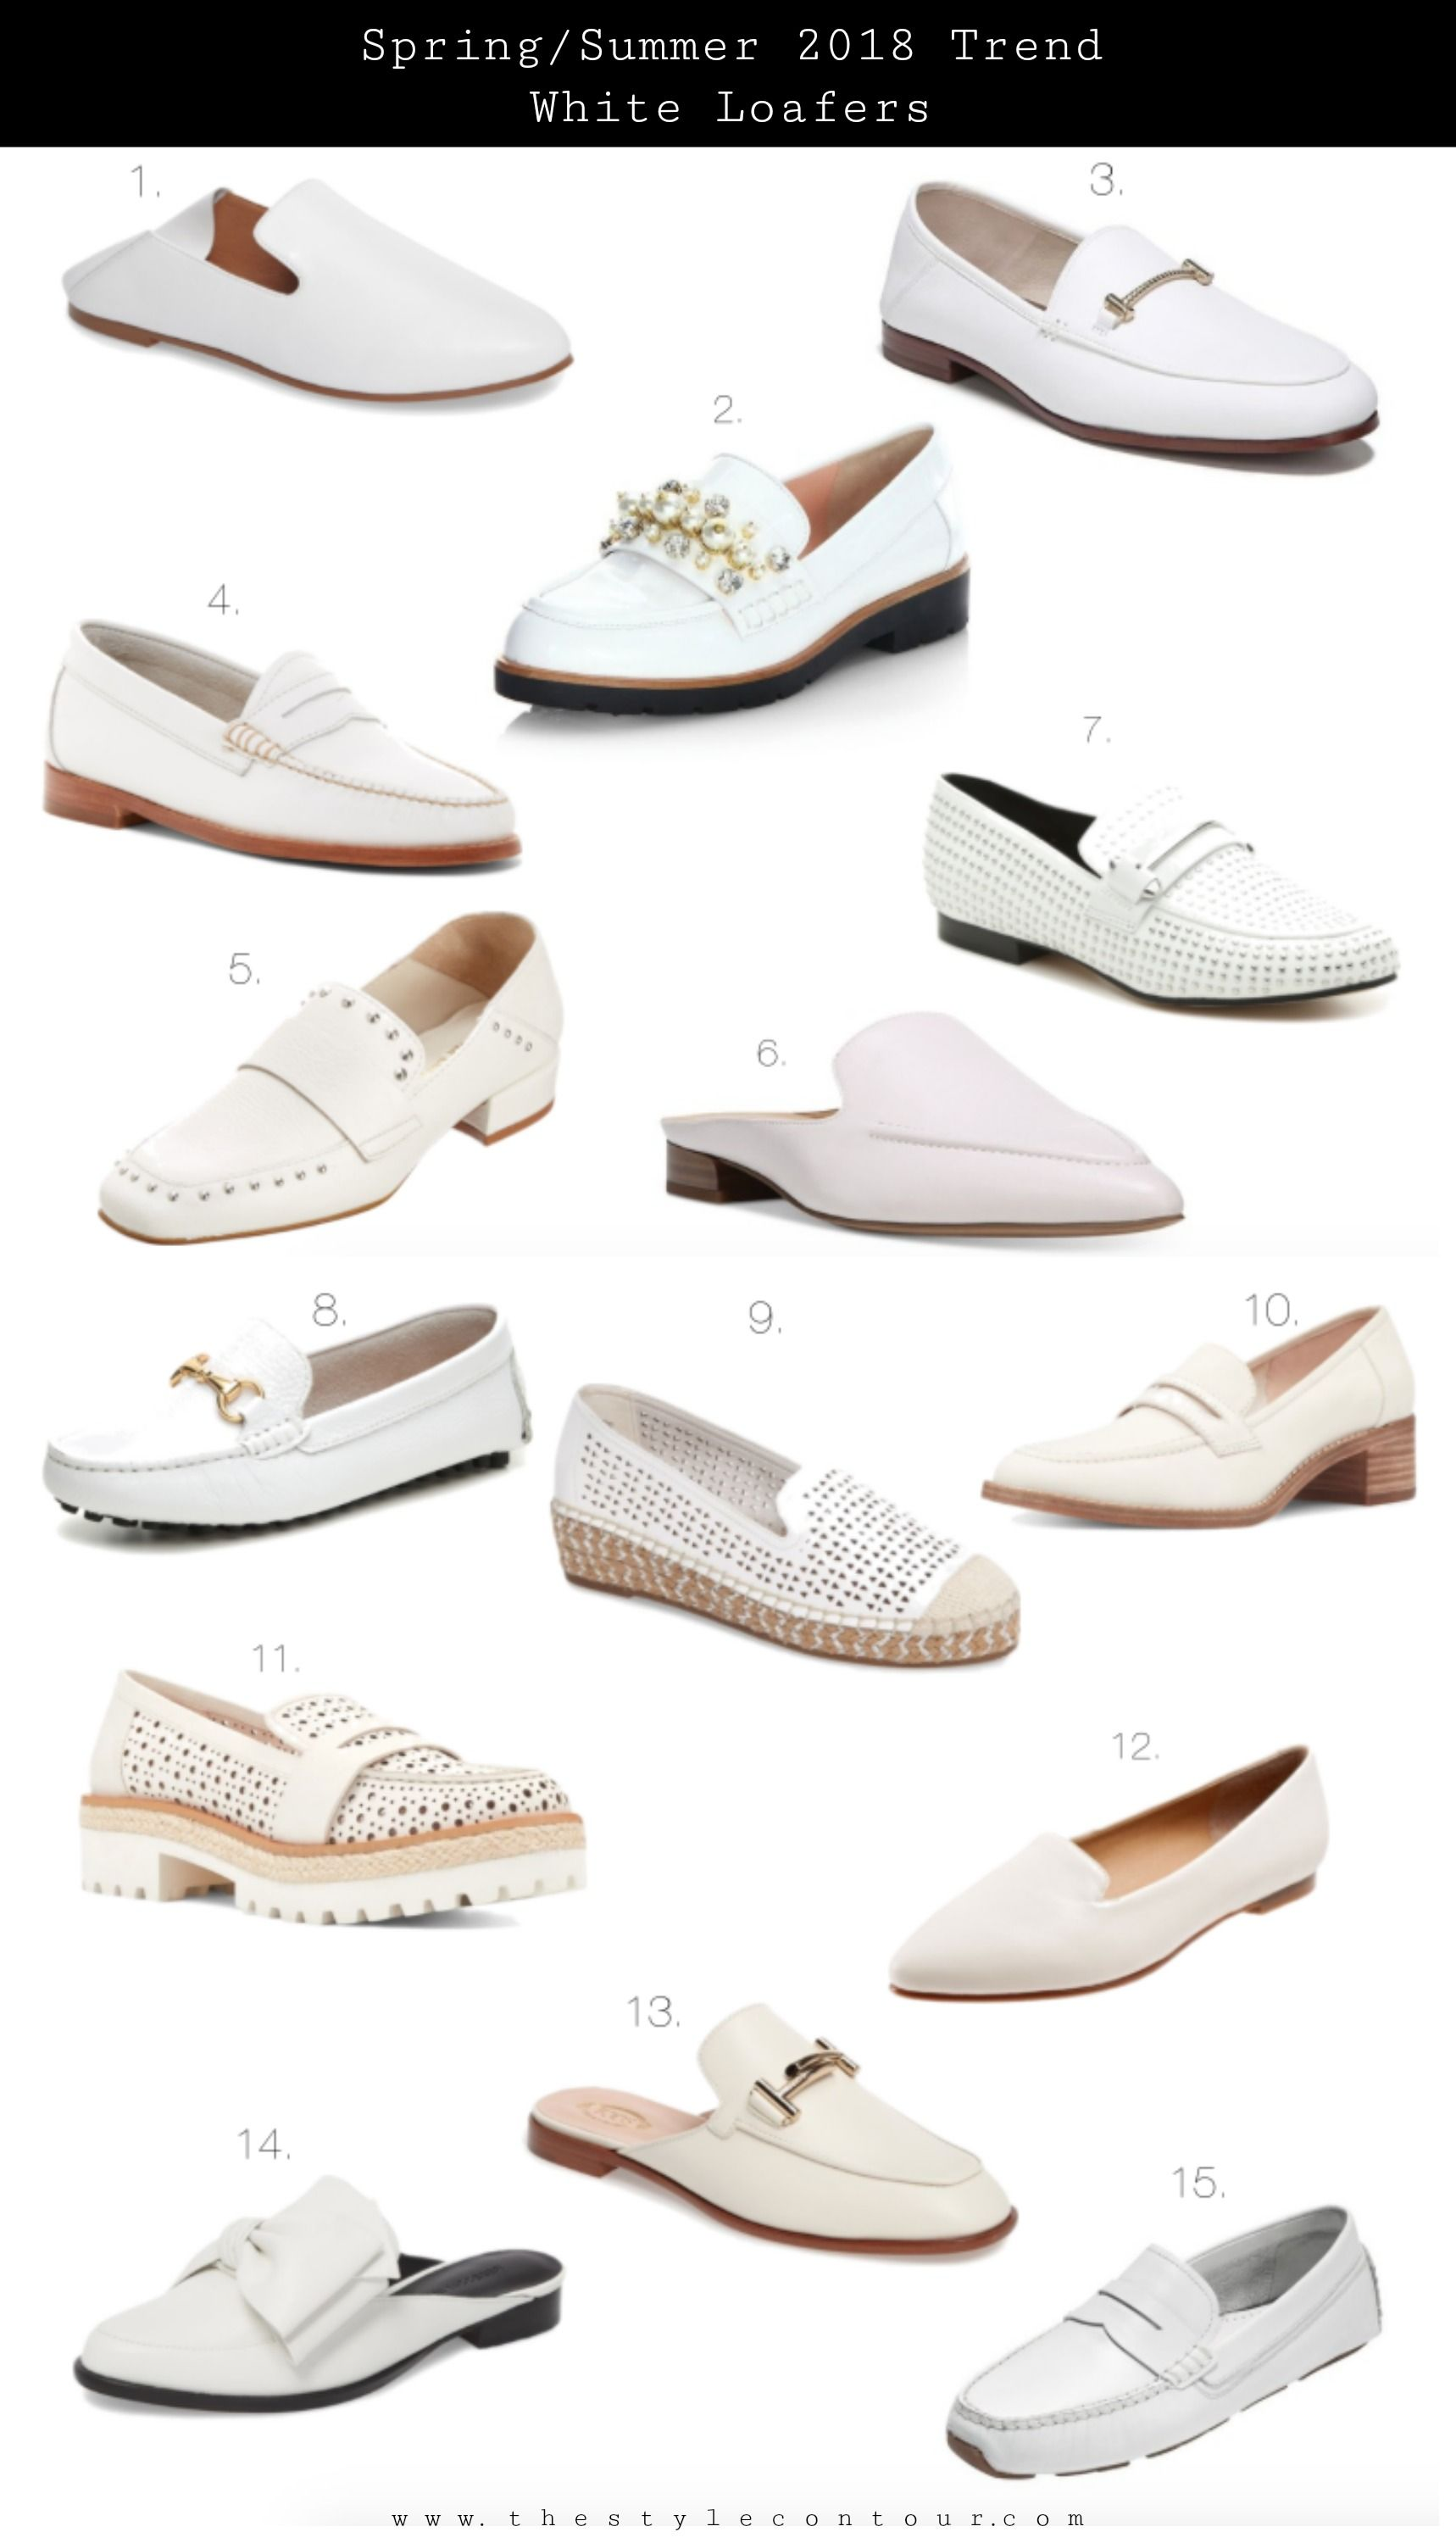 Fashion Forecast: White Loafer Trend